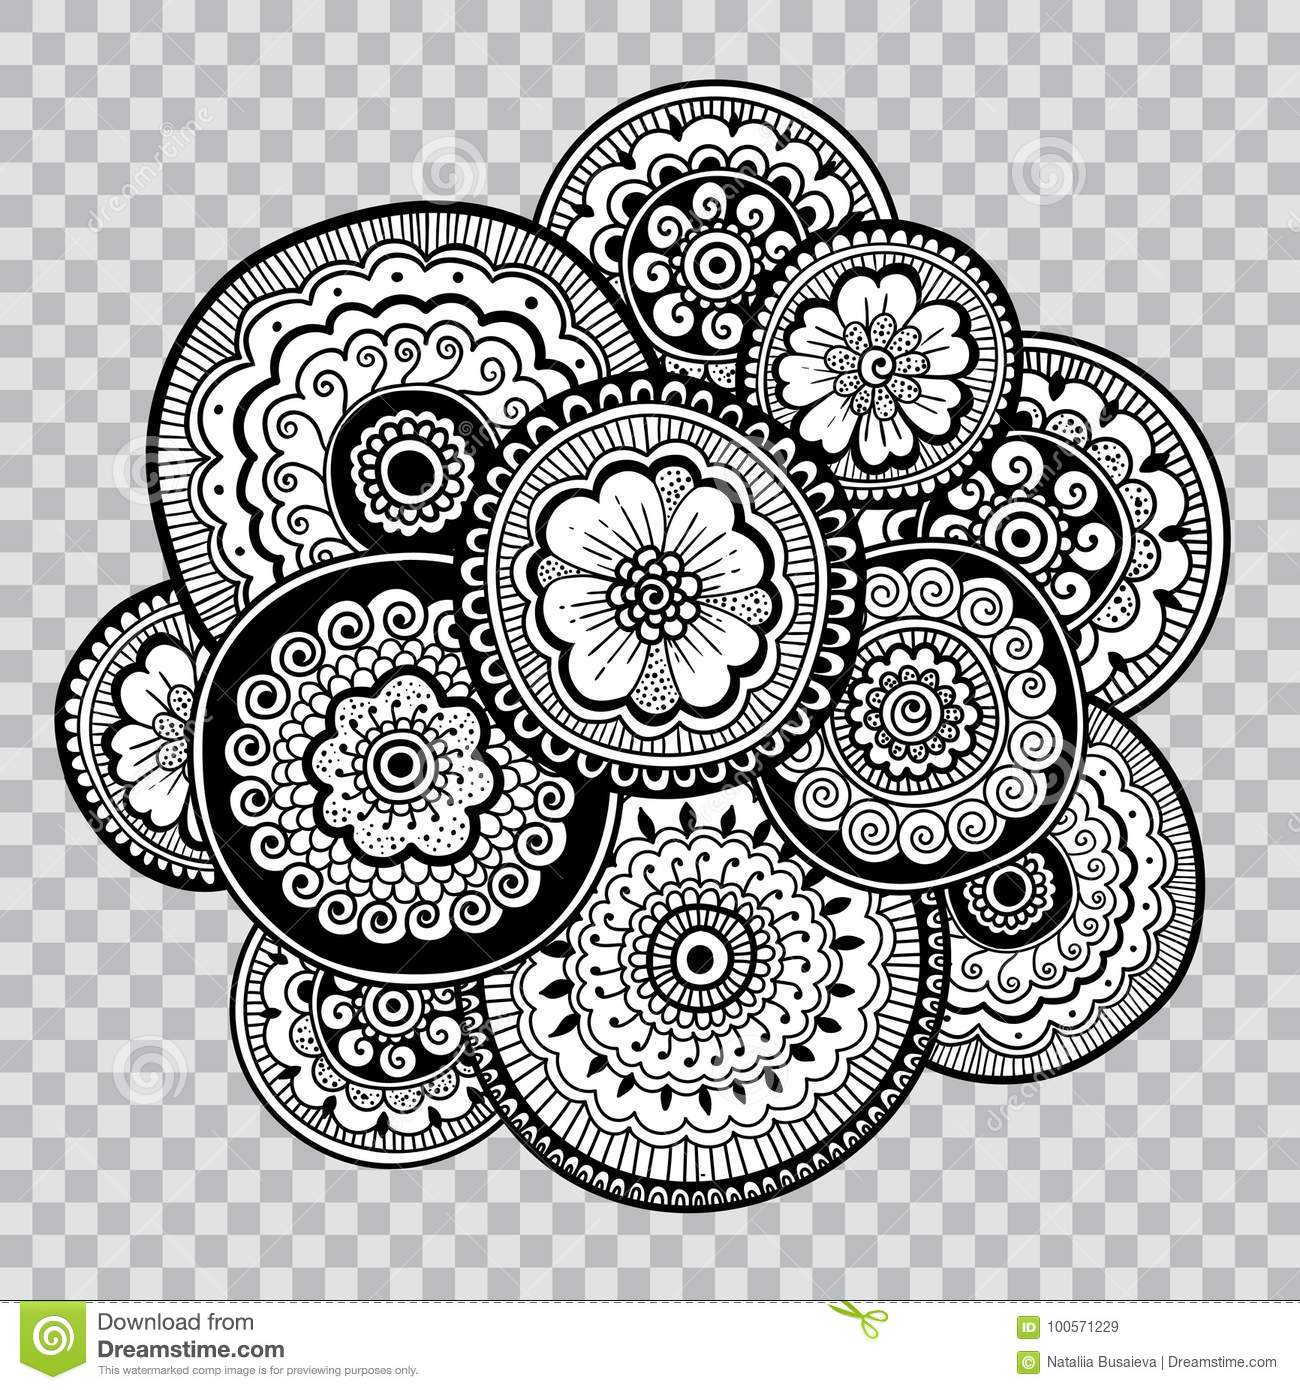 Black And White Floral Coloring On Transparent Background